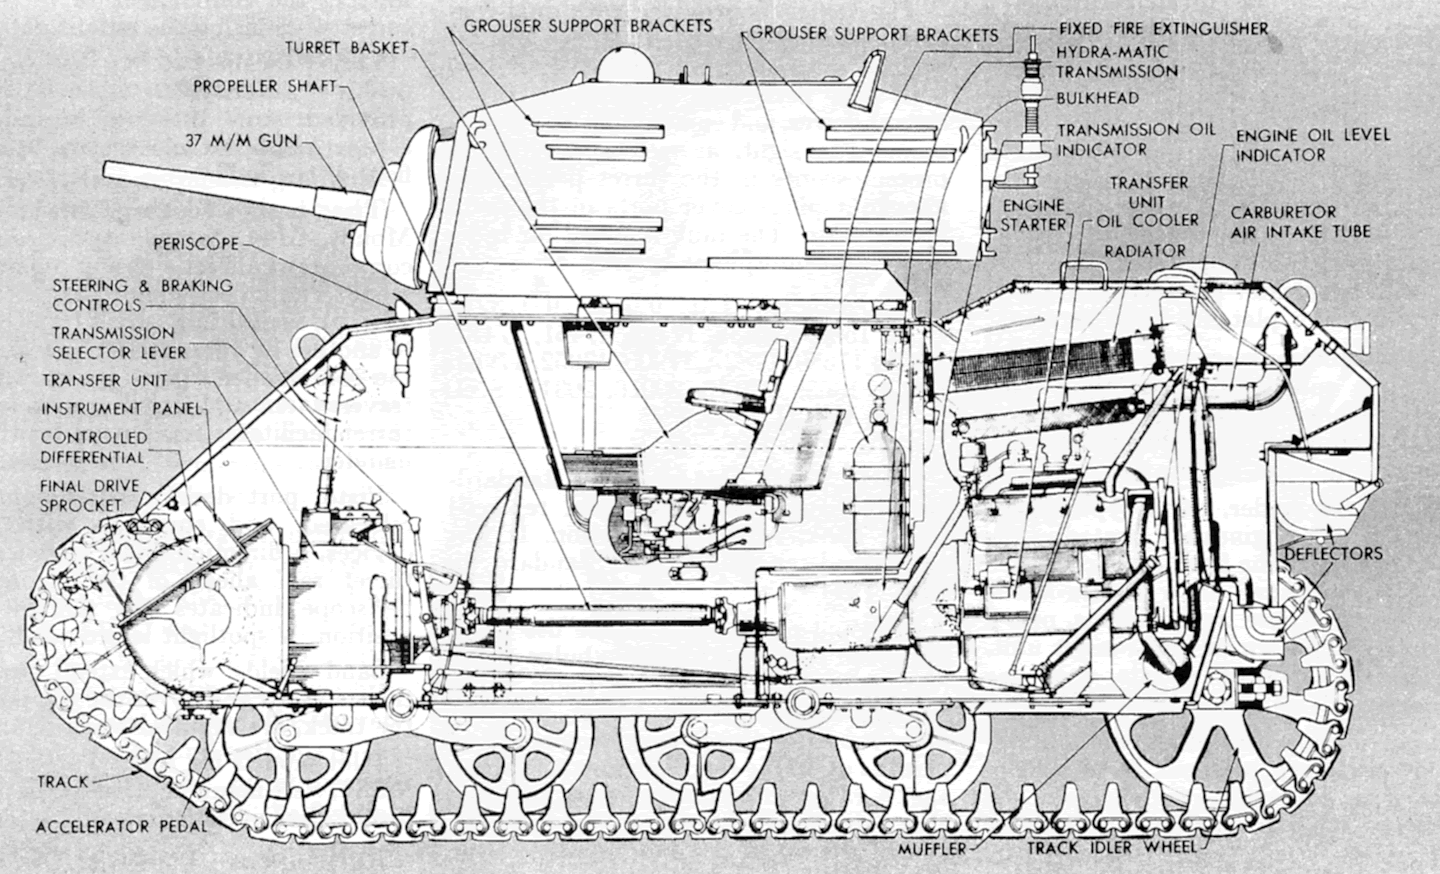 hight resolution of m5a1 light tank drawing 02 png 1440 874